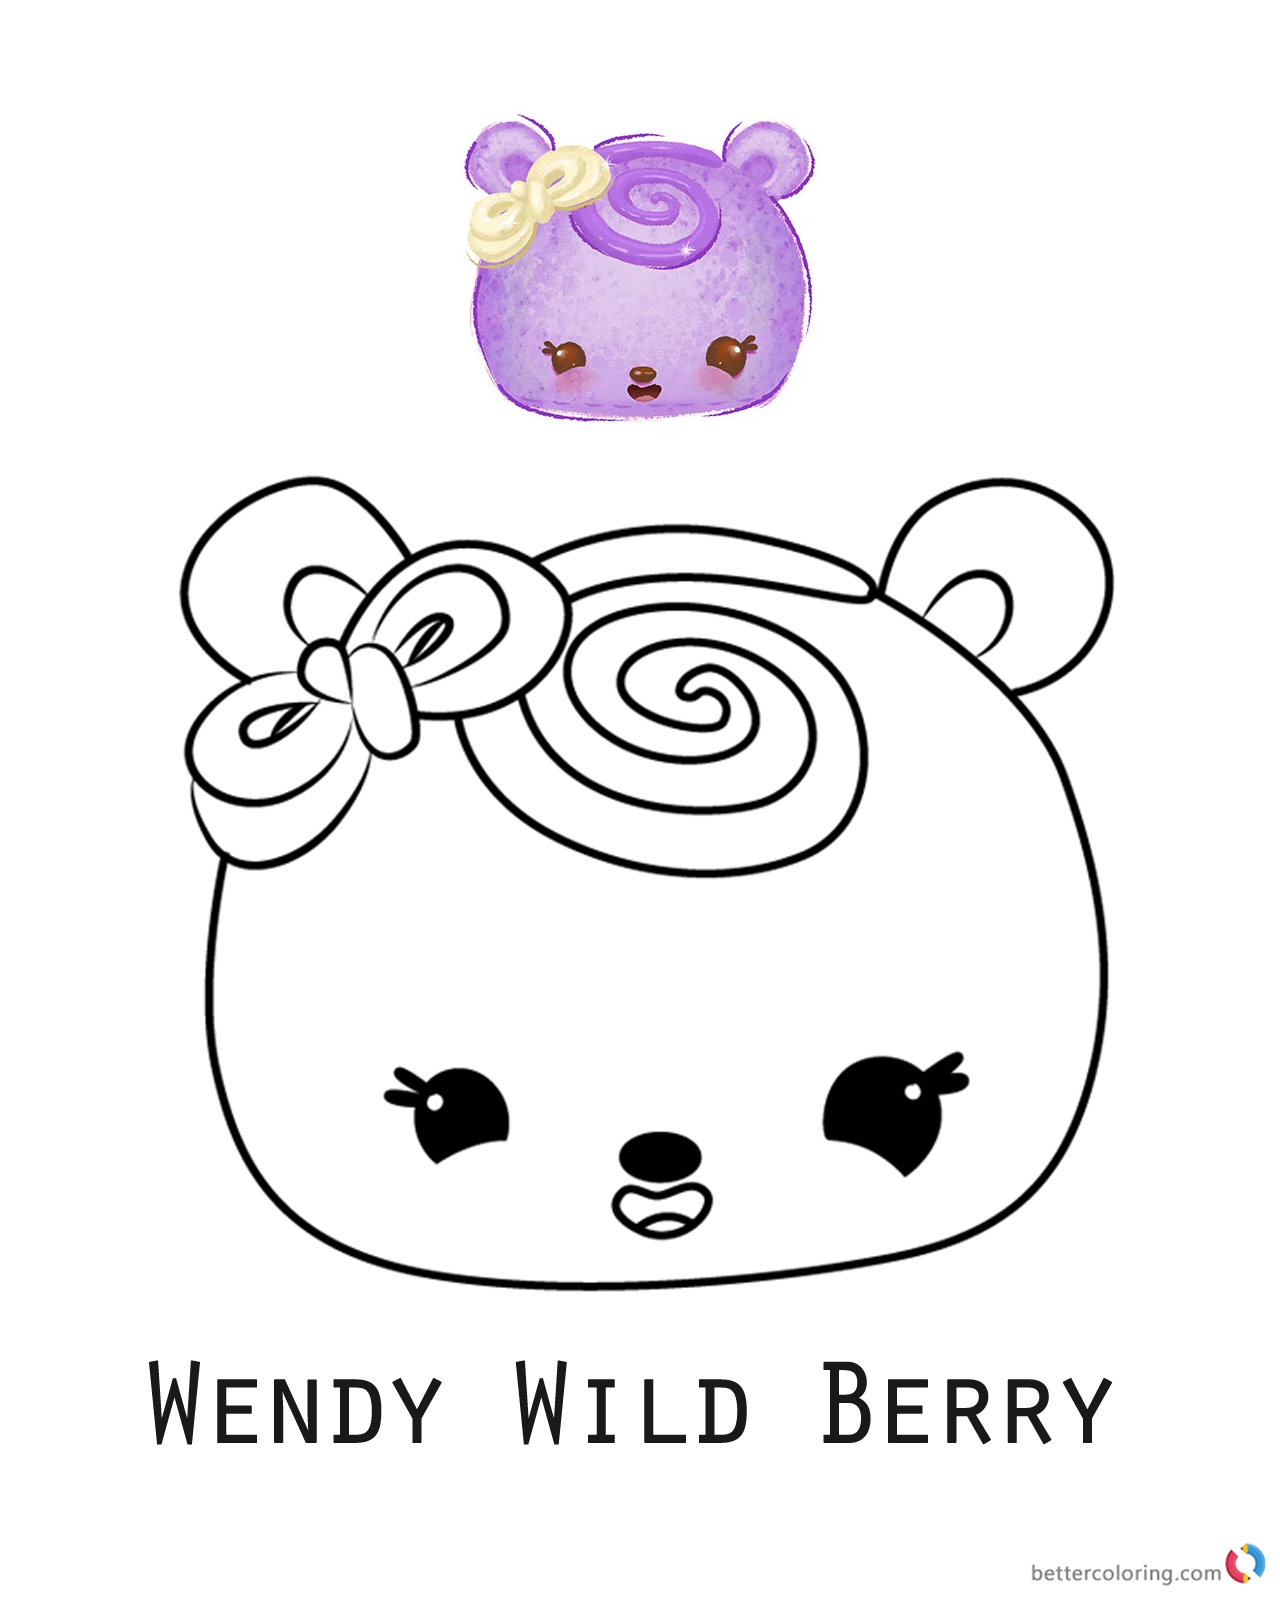 Wendy Wild Berry from Num Noms coloring pages printable